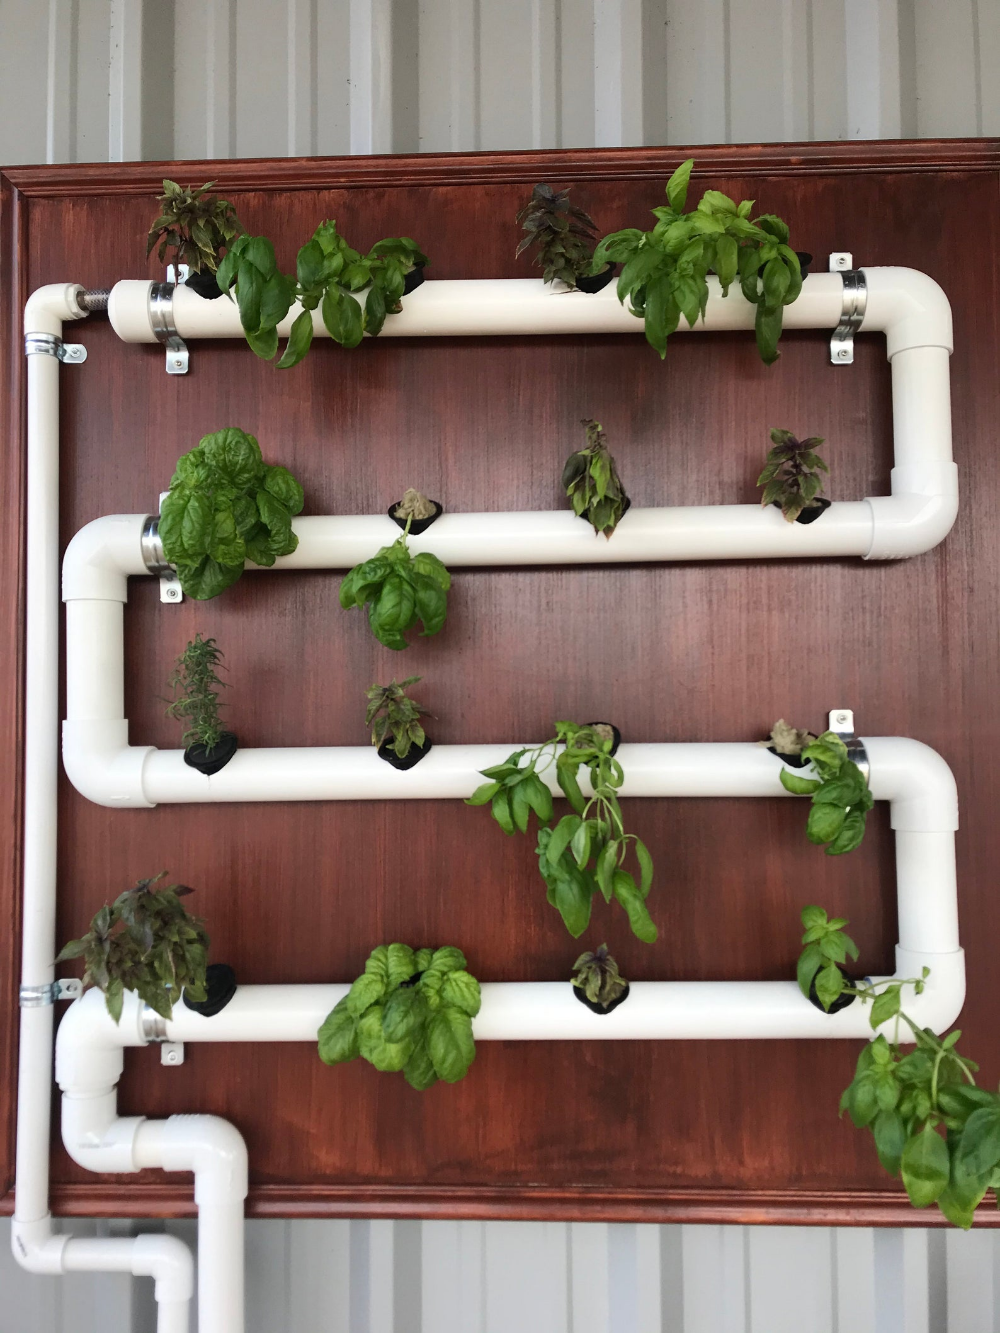 Personalized Hydroponic System/ Indoor and Outdoor Garden